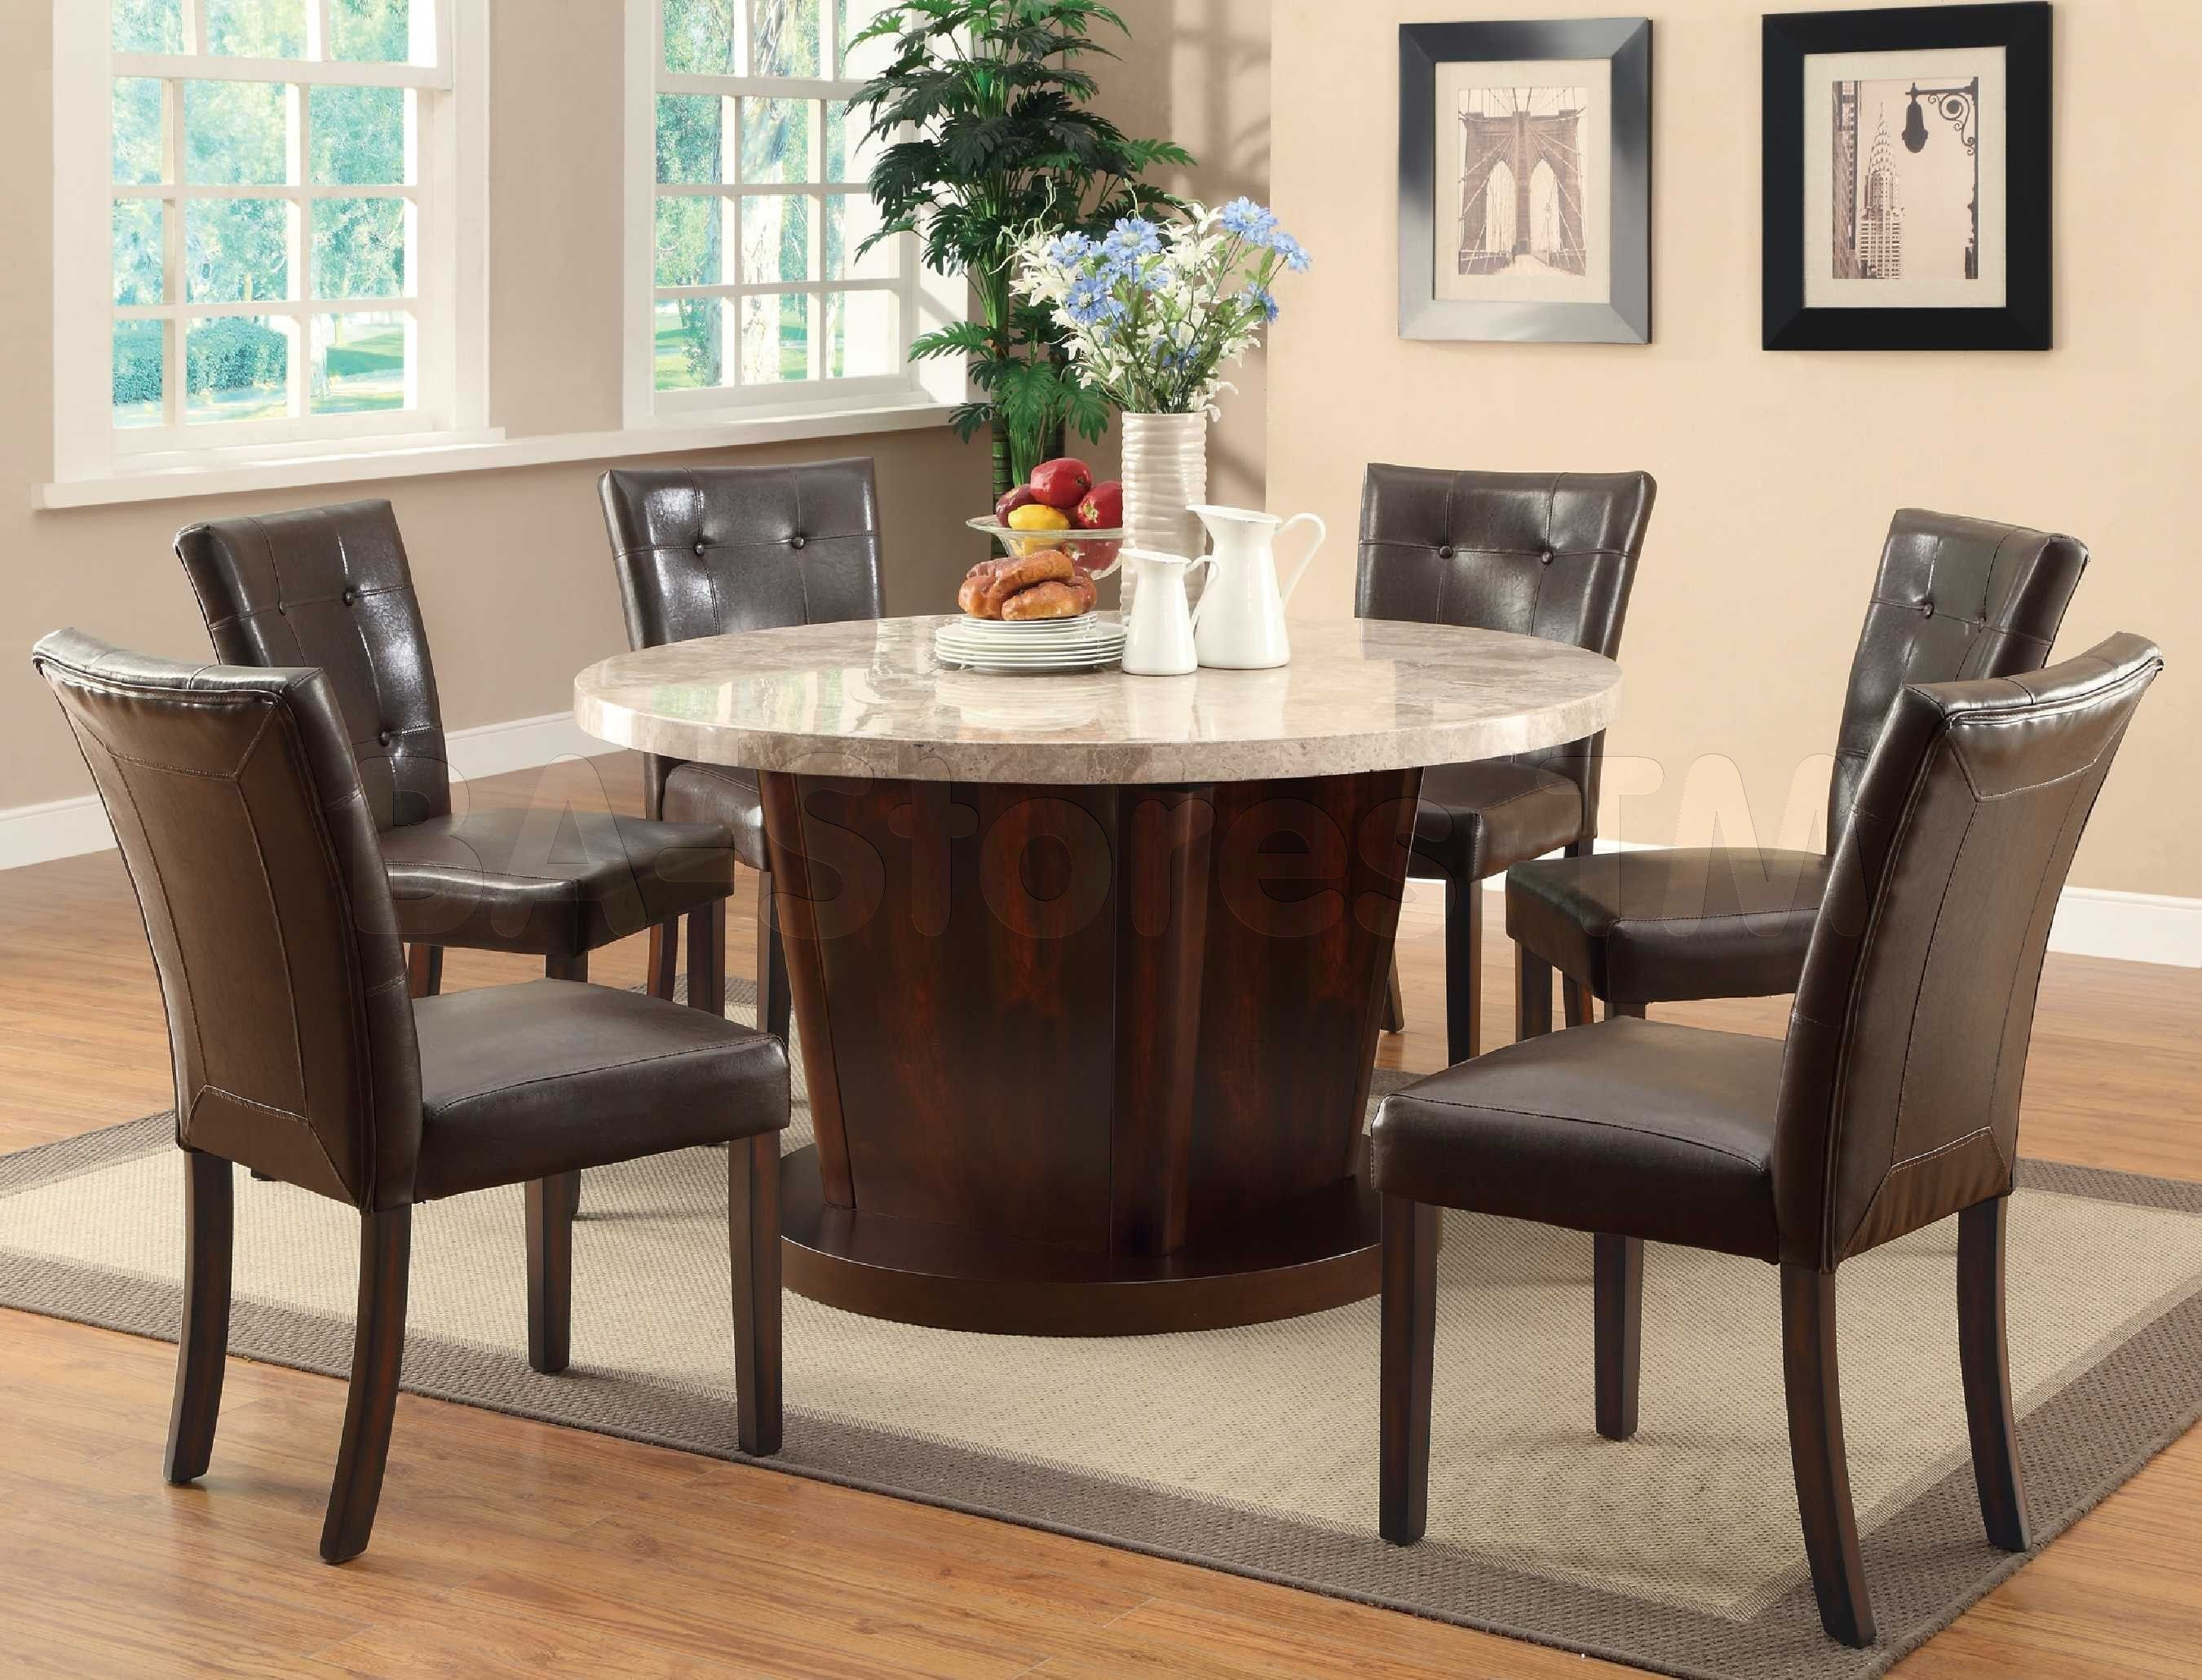 Contemporary Dining Room Tables And Chairs Entrancing Lowcost Dining Room Tablesdishy Room Tables Cheap Prices Dining Design Decoration